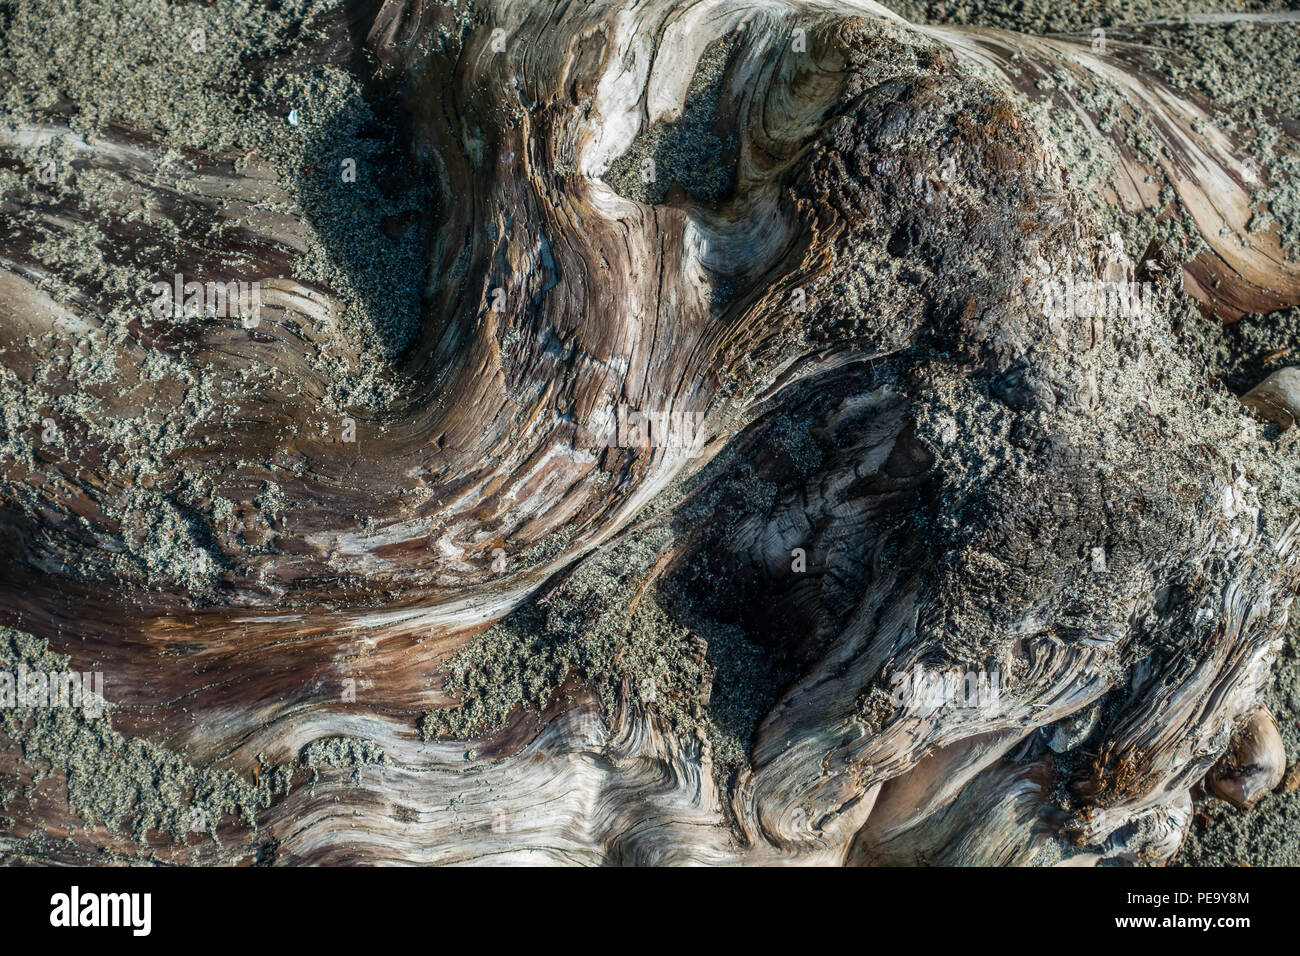 A macro shot of a warped driftwood log with sand on top. - Stock Image